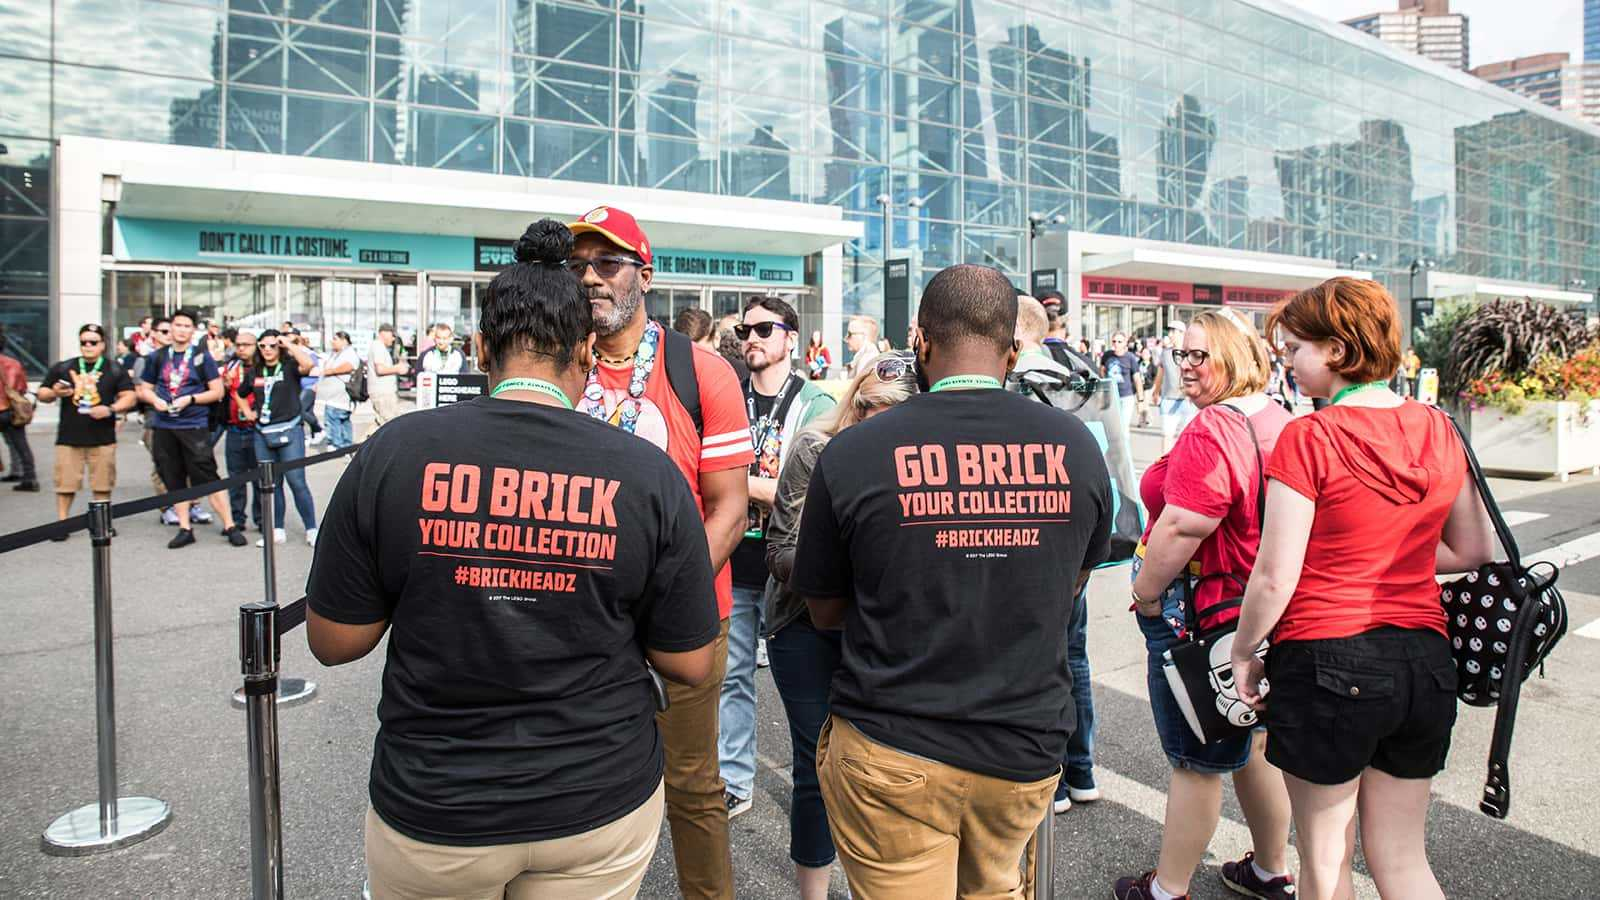 Fans line up to purchase limited edition LEGO Star Wars BrickHeadz at the #GoBrick zone at New York Comic Con 2017.